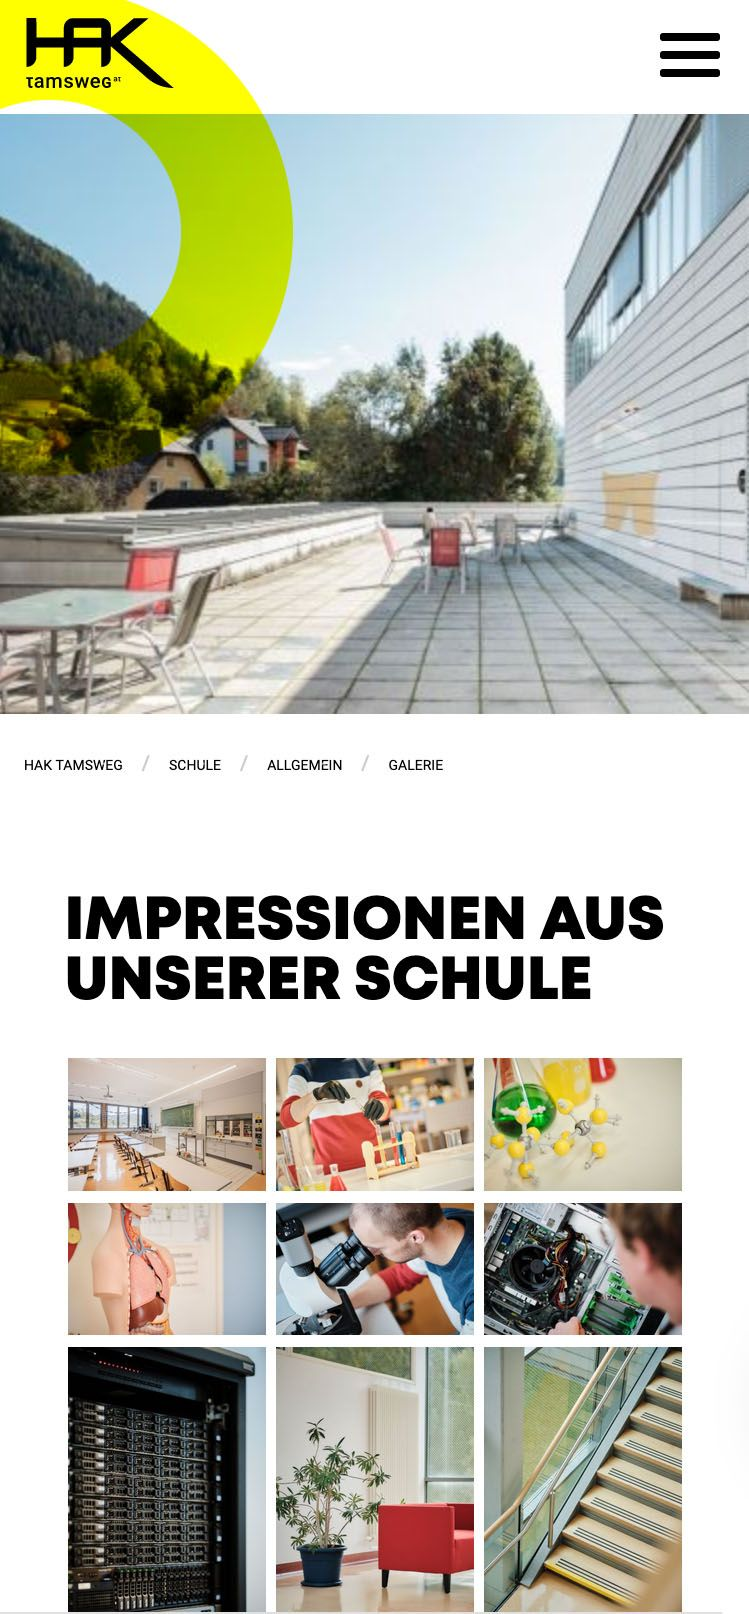 Relaunch der HAK Tamsweg / Website by KWER